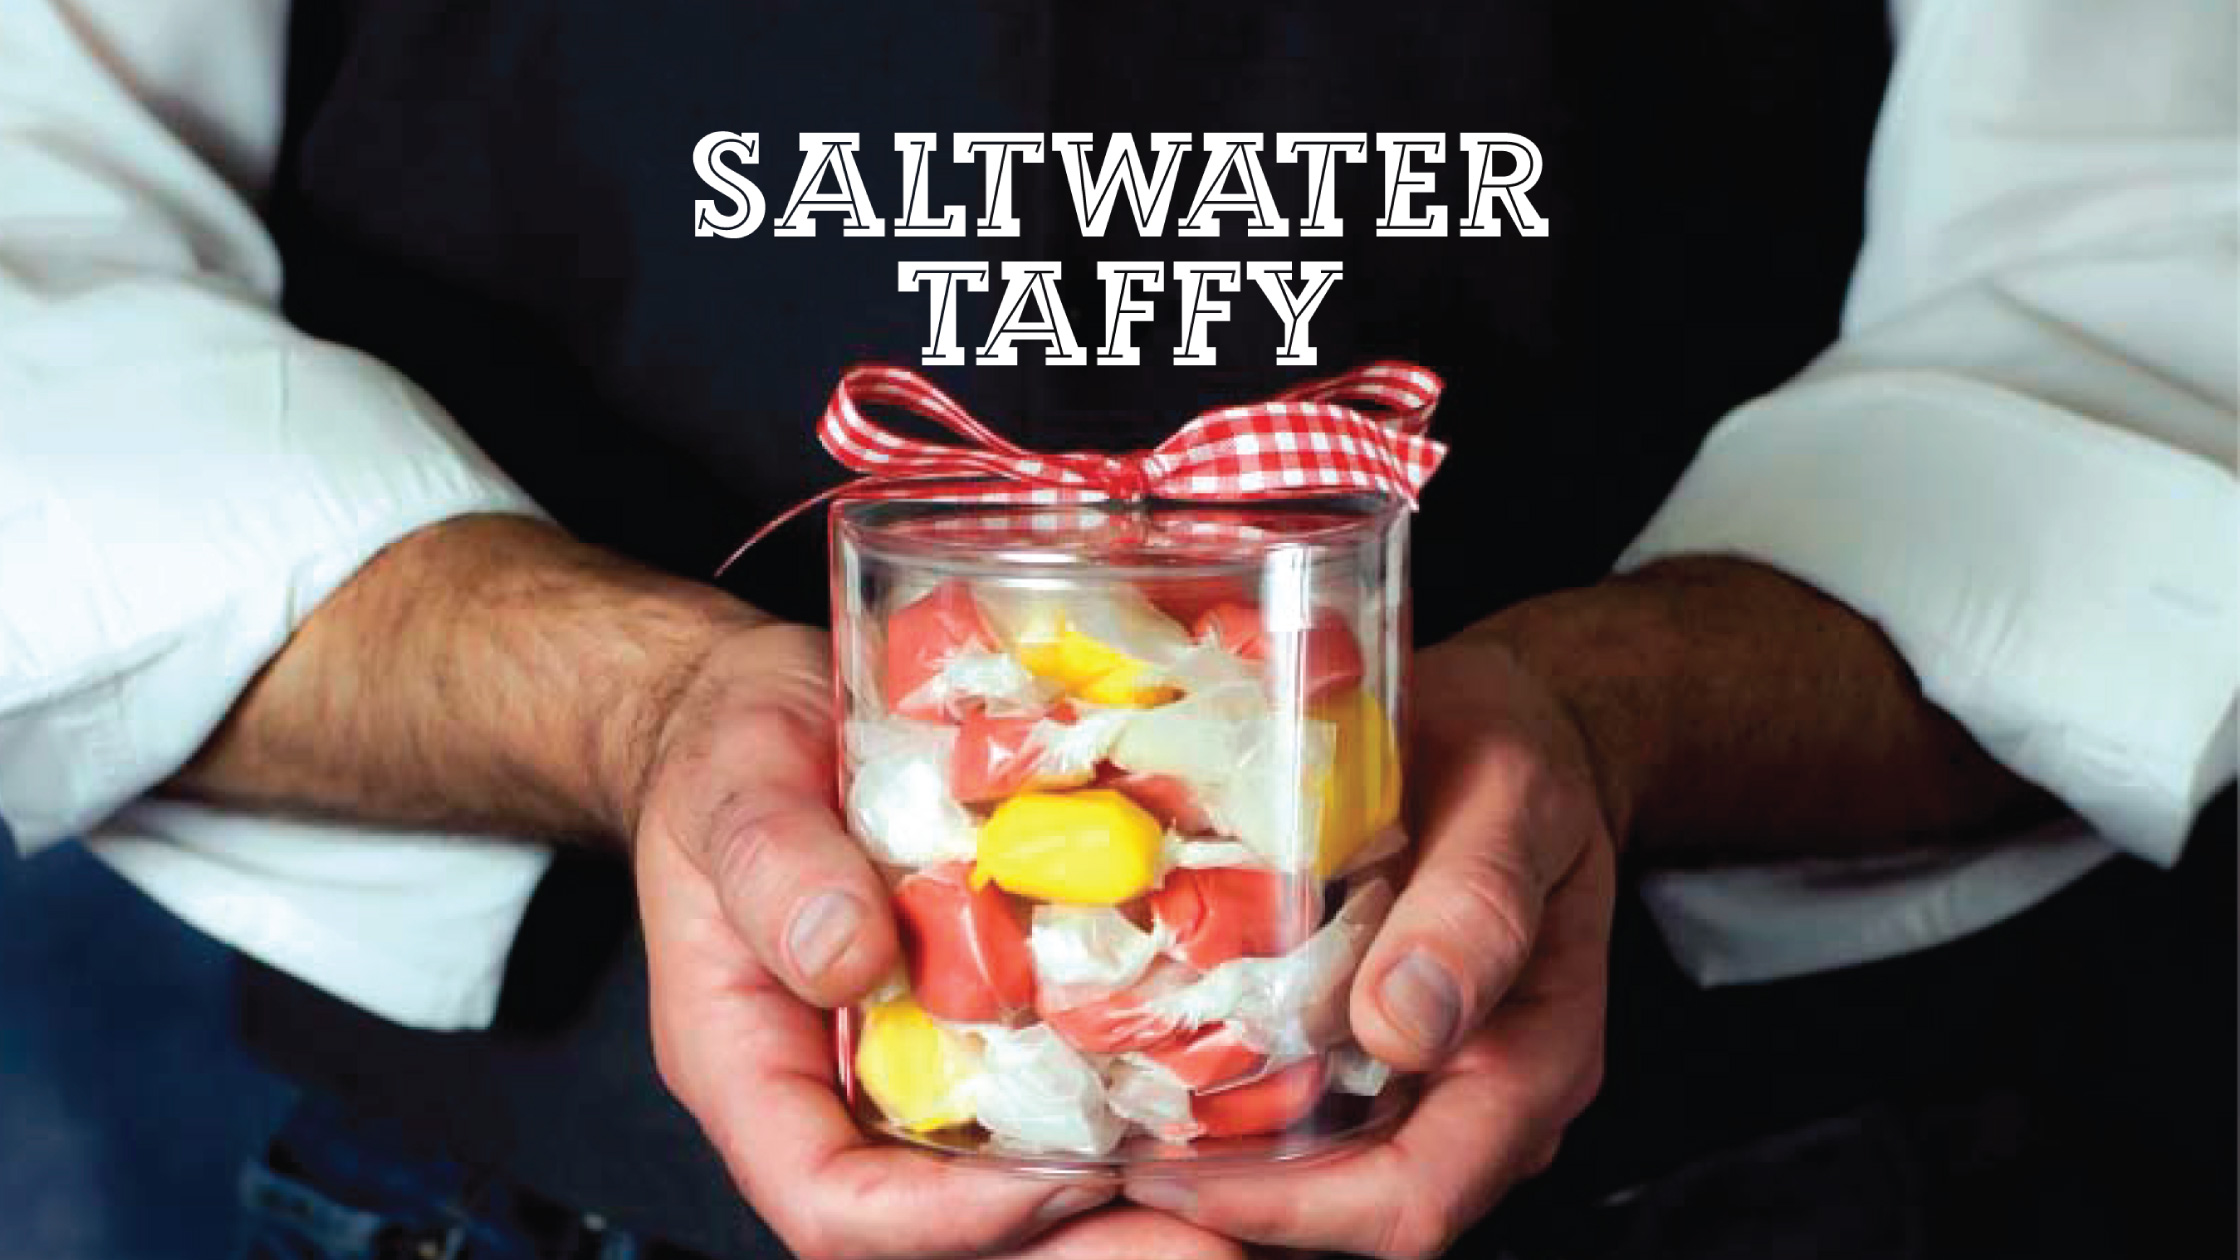 Saltwater Taffy: The Video